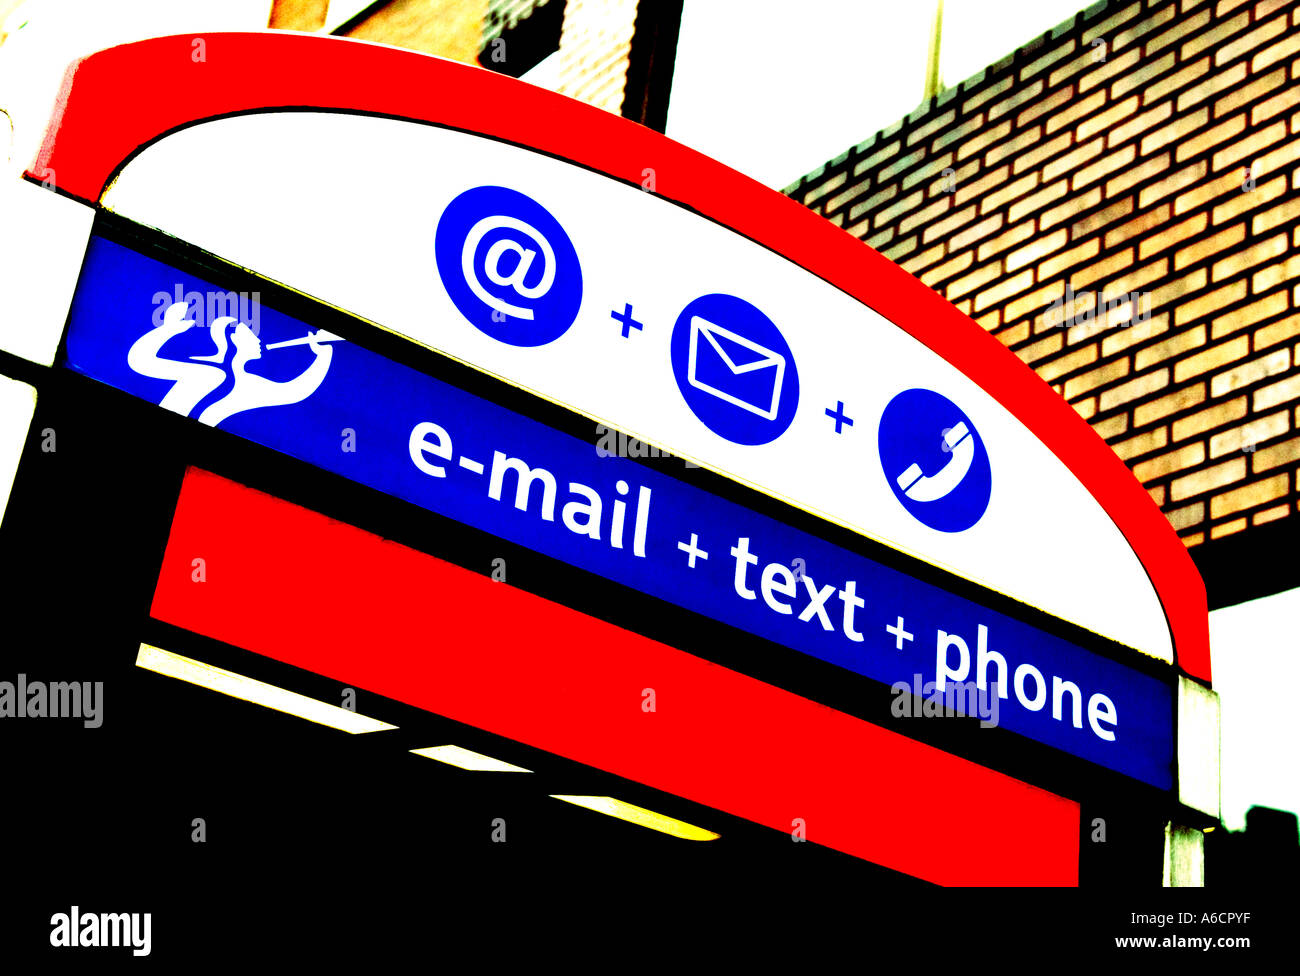 Telephone box with symbols for email text and telephone facilities - Stock Image